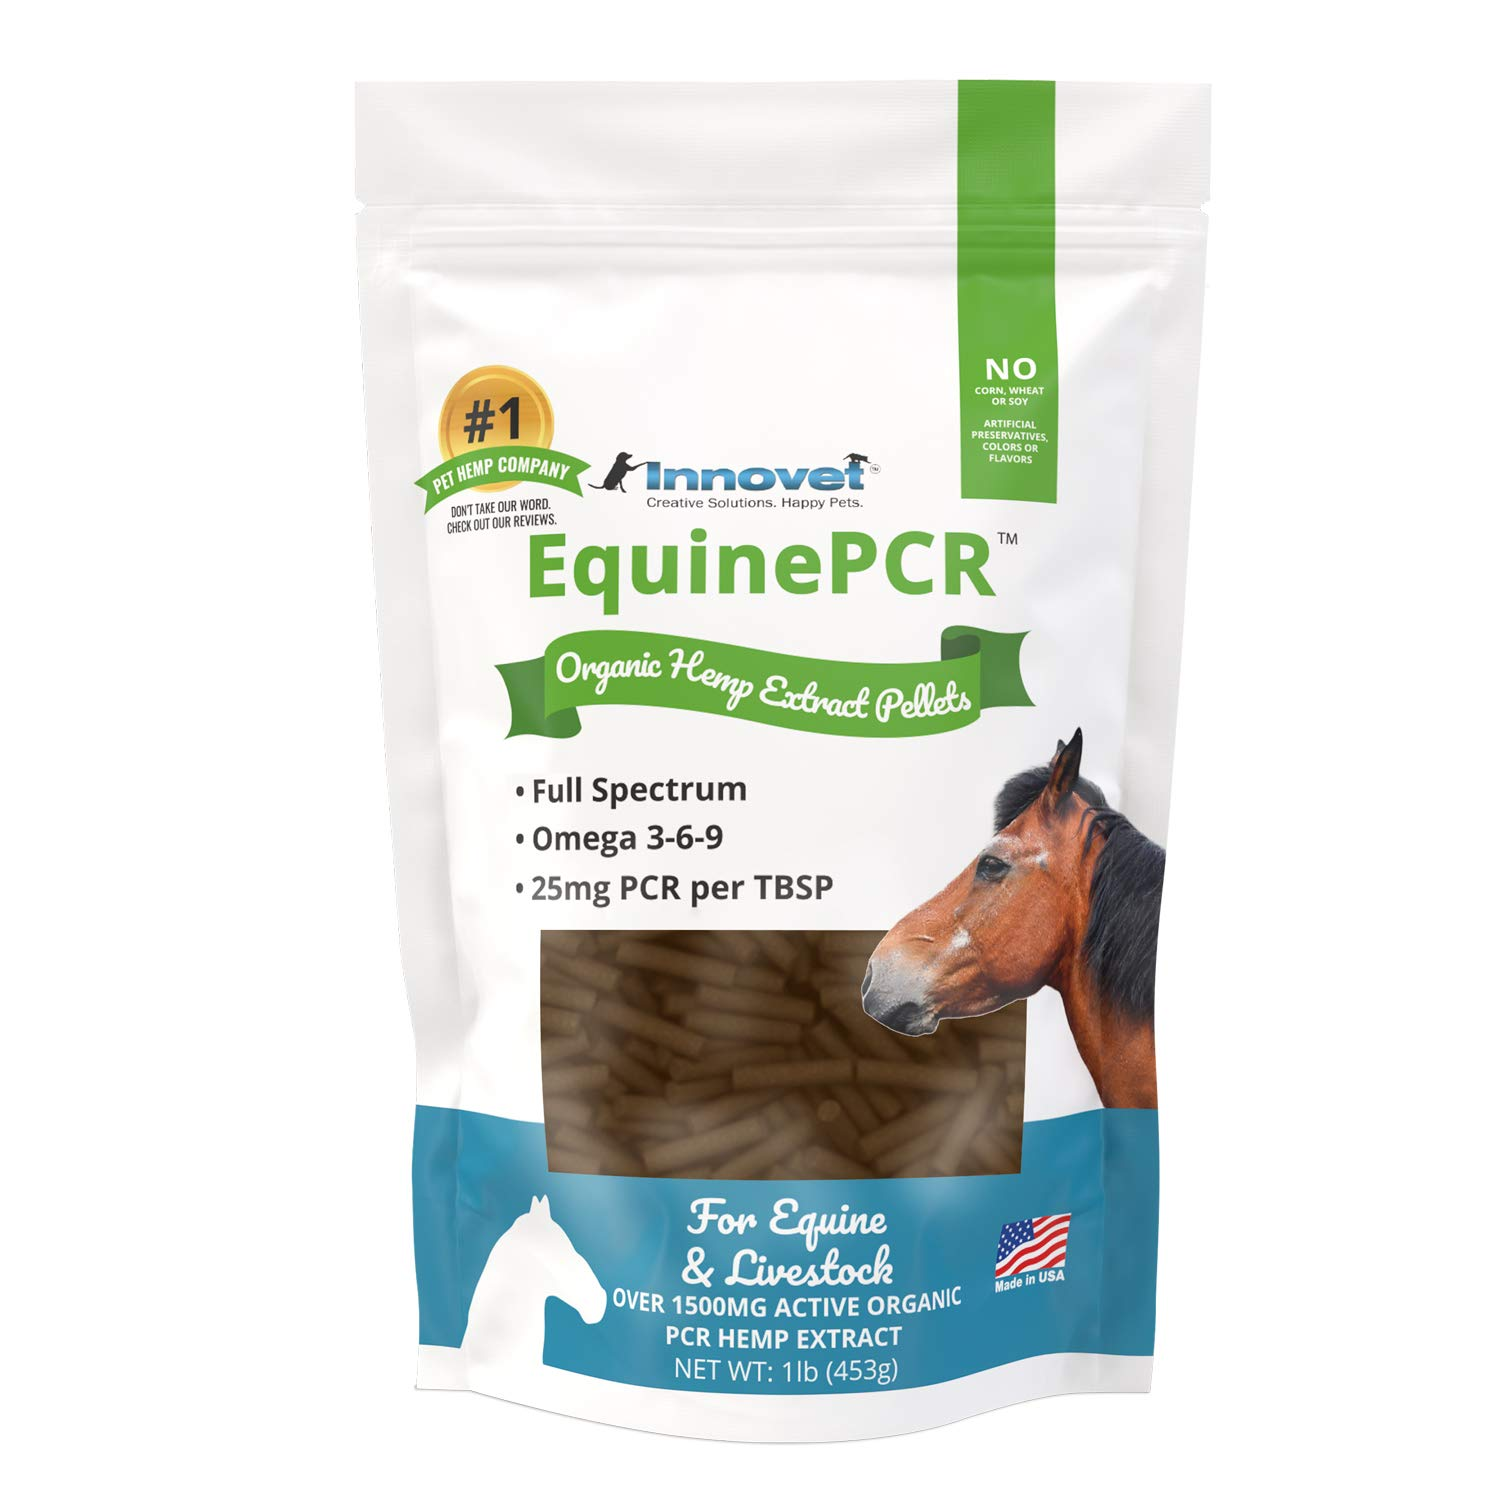 INNOVET Equine PCR Hemp Pellets for Horses - Natural Equine Pellets Relieves Joint Pain & Discomfort | Reduces Stress, Inflammation & Supports Performance - 1 lb Bag by Innovet Pet Products